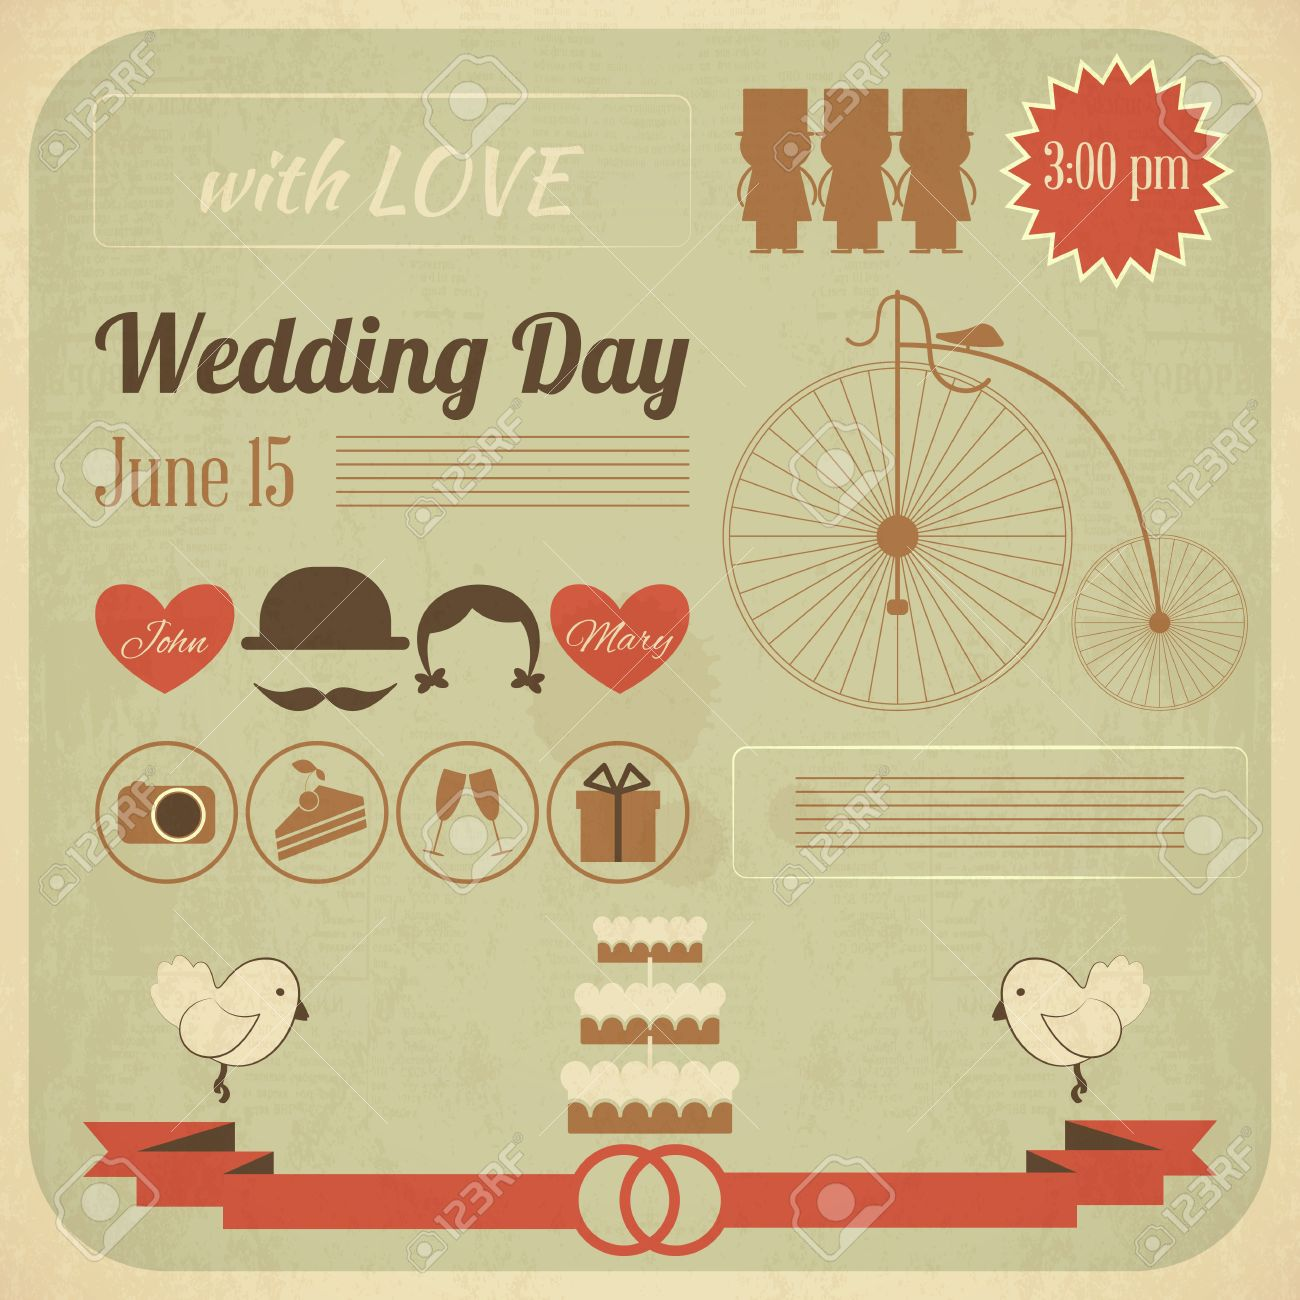 Wedding Day Invitation Card In Retro Infographics Style Vintage Royalty Free Cliparts Vectors And Stock Illustration Image 19218293